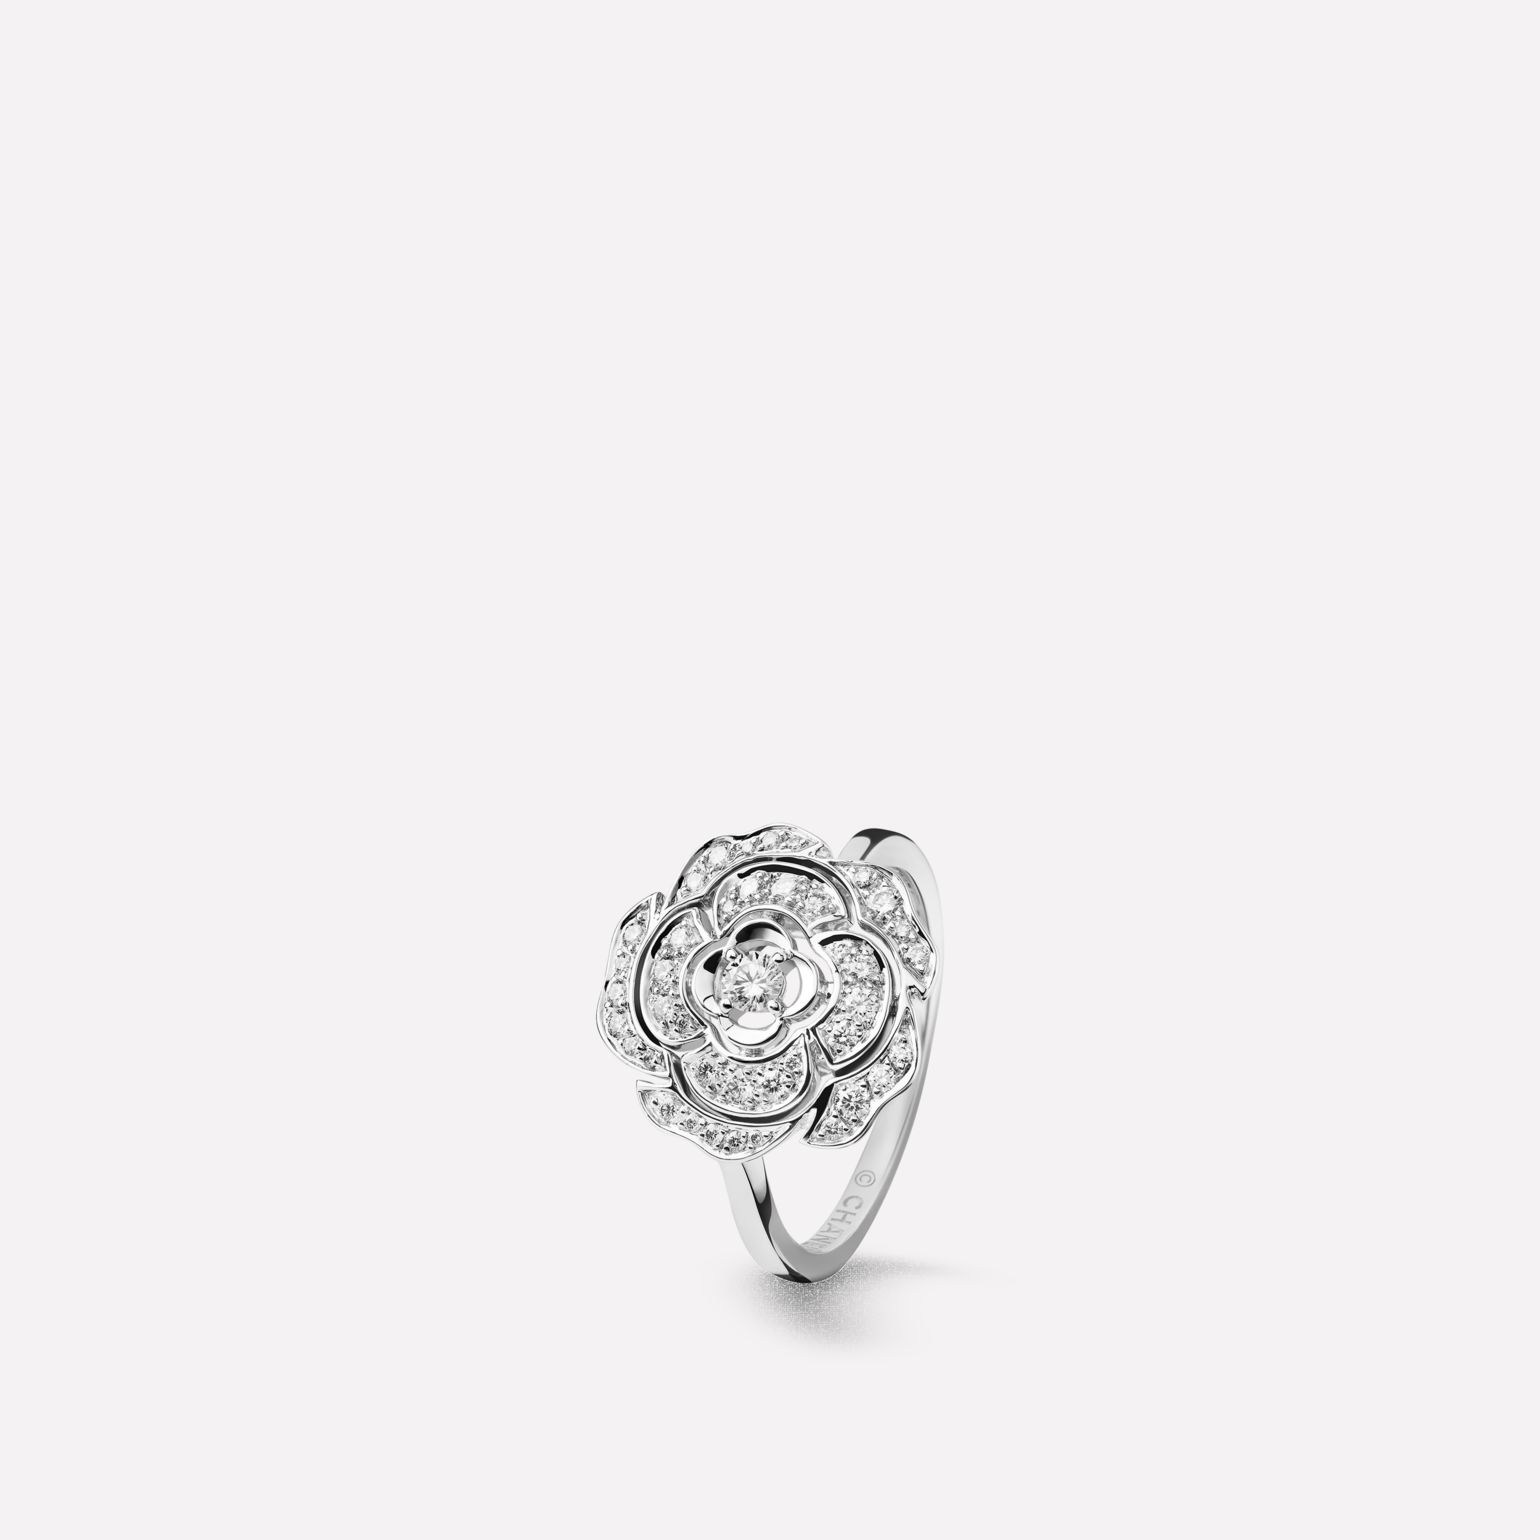 Camélia ring Extreme Size Bouton de Camélia ring in 18K white gold and diamonds with one center diamond